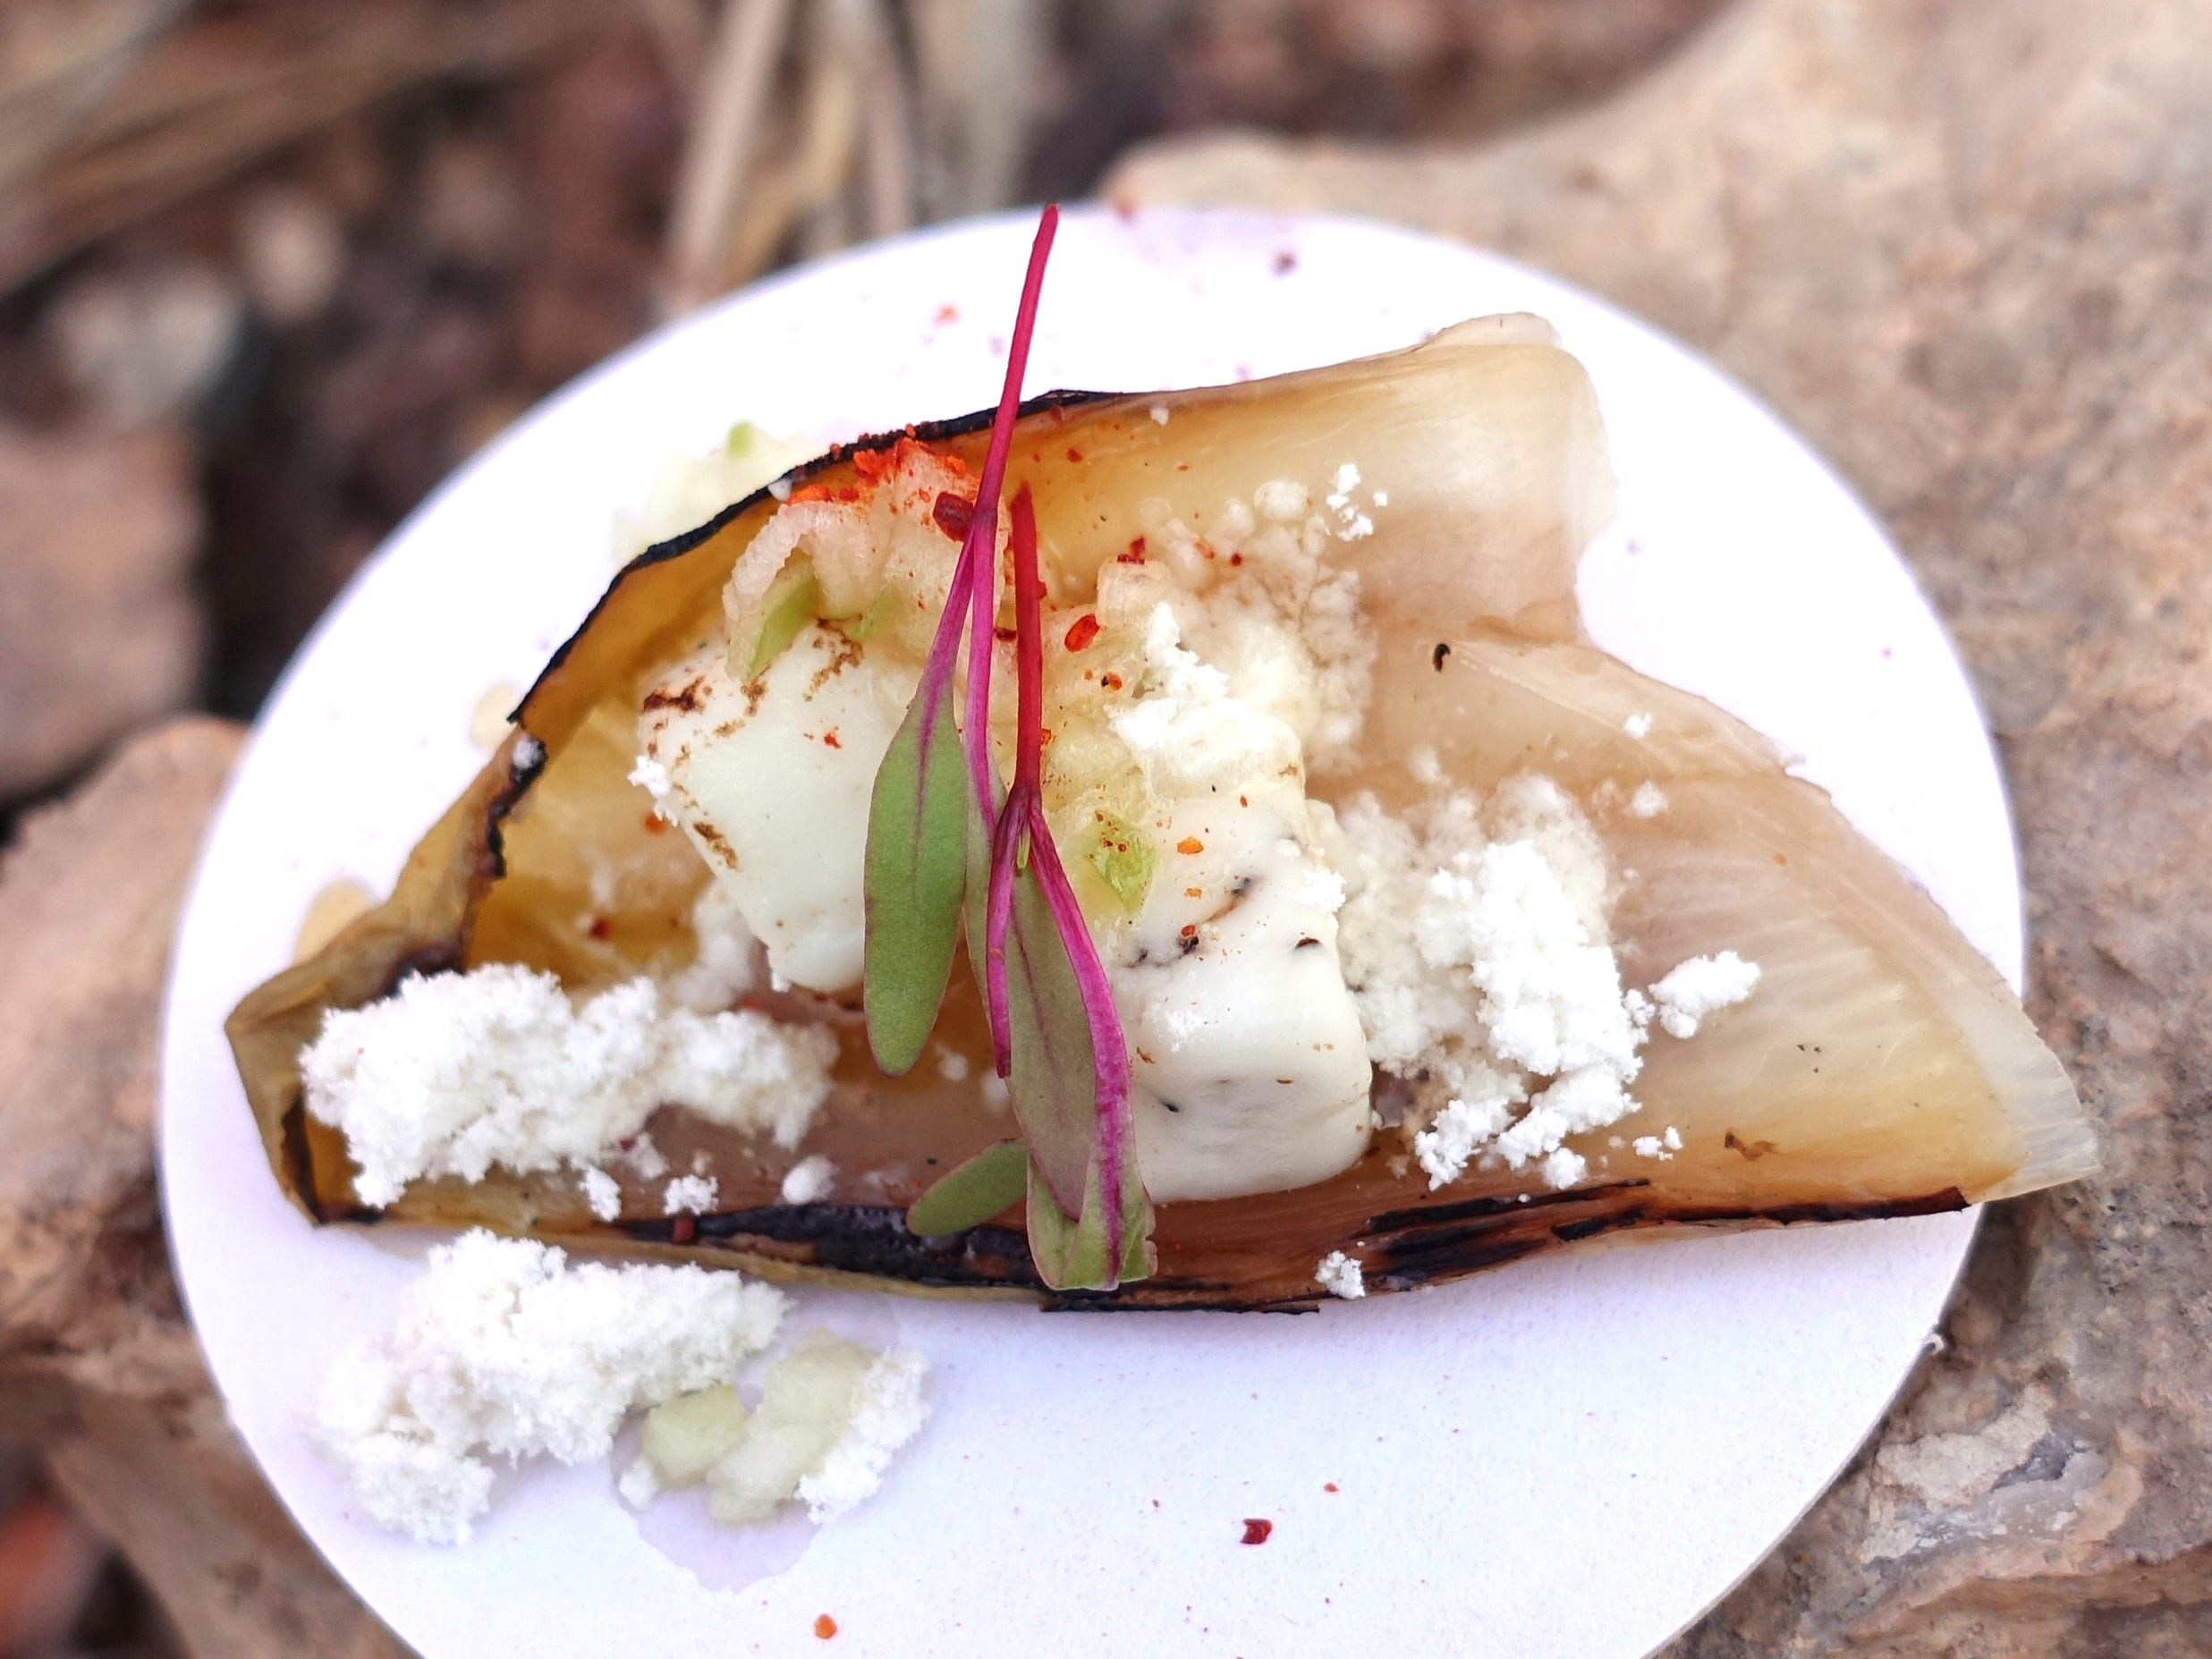 Peppercorn 'semi-frico' with Crow's Dairy peppercorn feta, endive, espelette, charred lemon honey, olive oil powder and green apple from The Dressing Room at the 2019 Devour Culinary Classic at the Desert Botanical Garden in Phoenix.